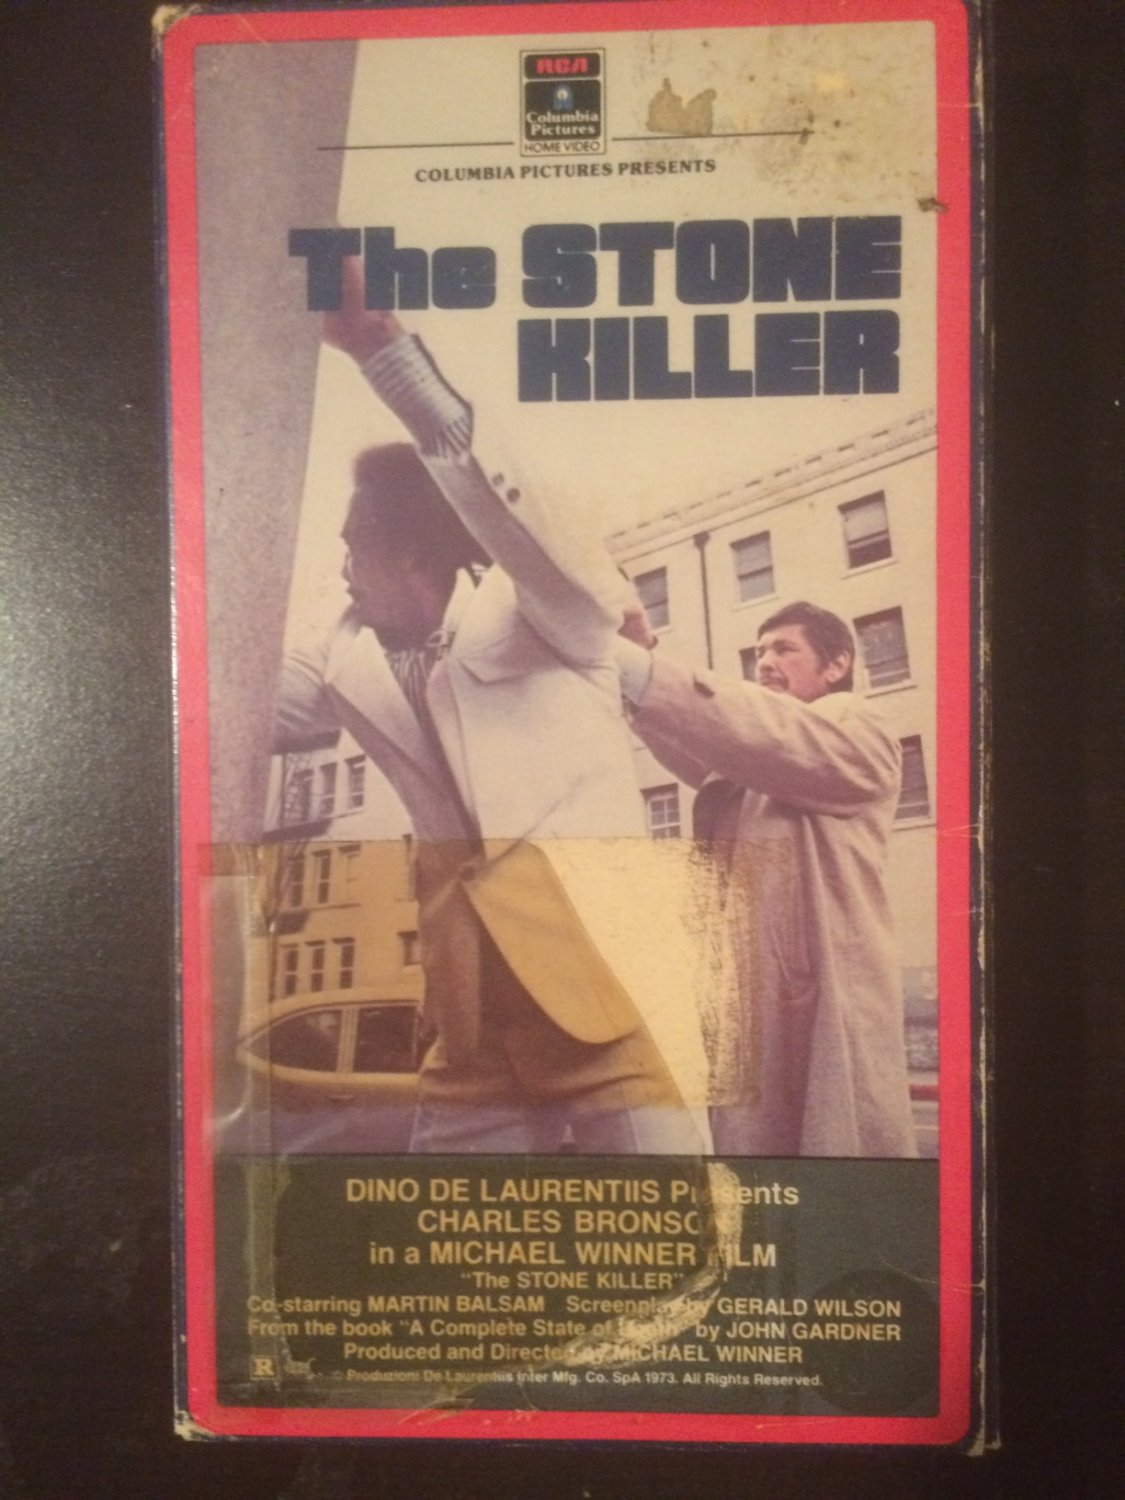 VHS - The Stone Killer (Charles Bronson) - Used